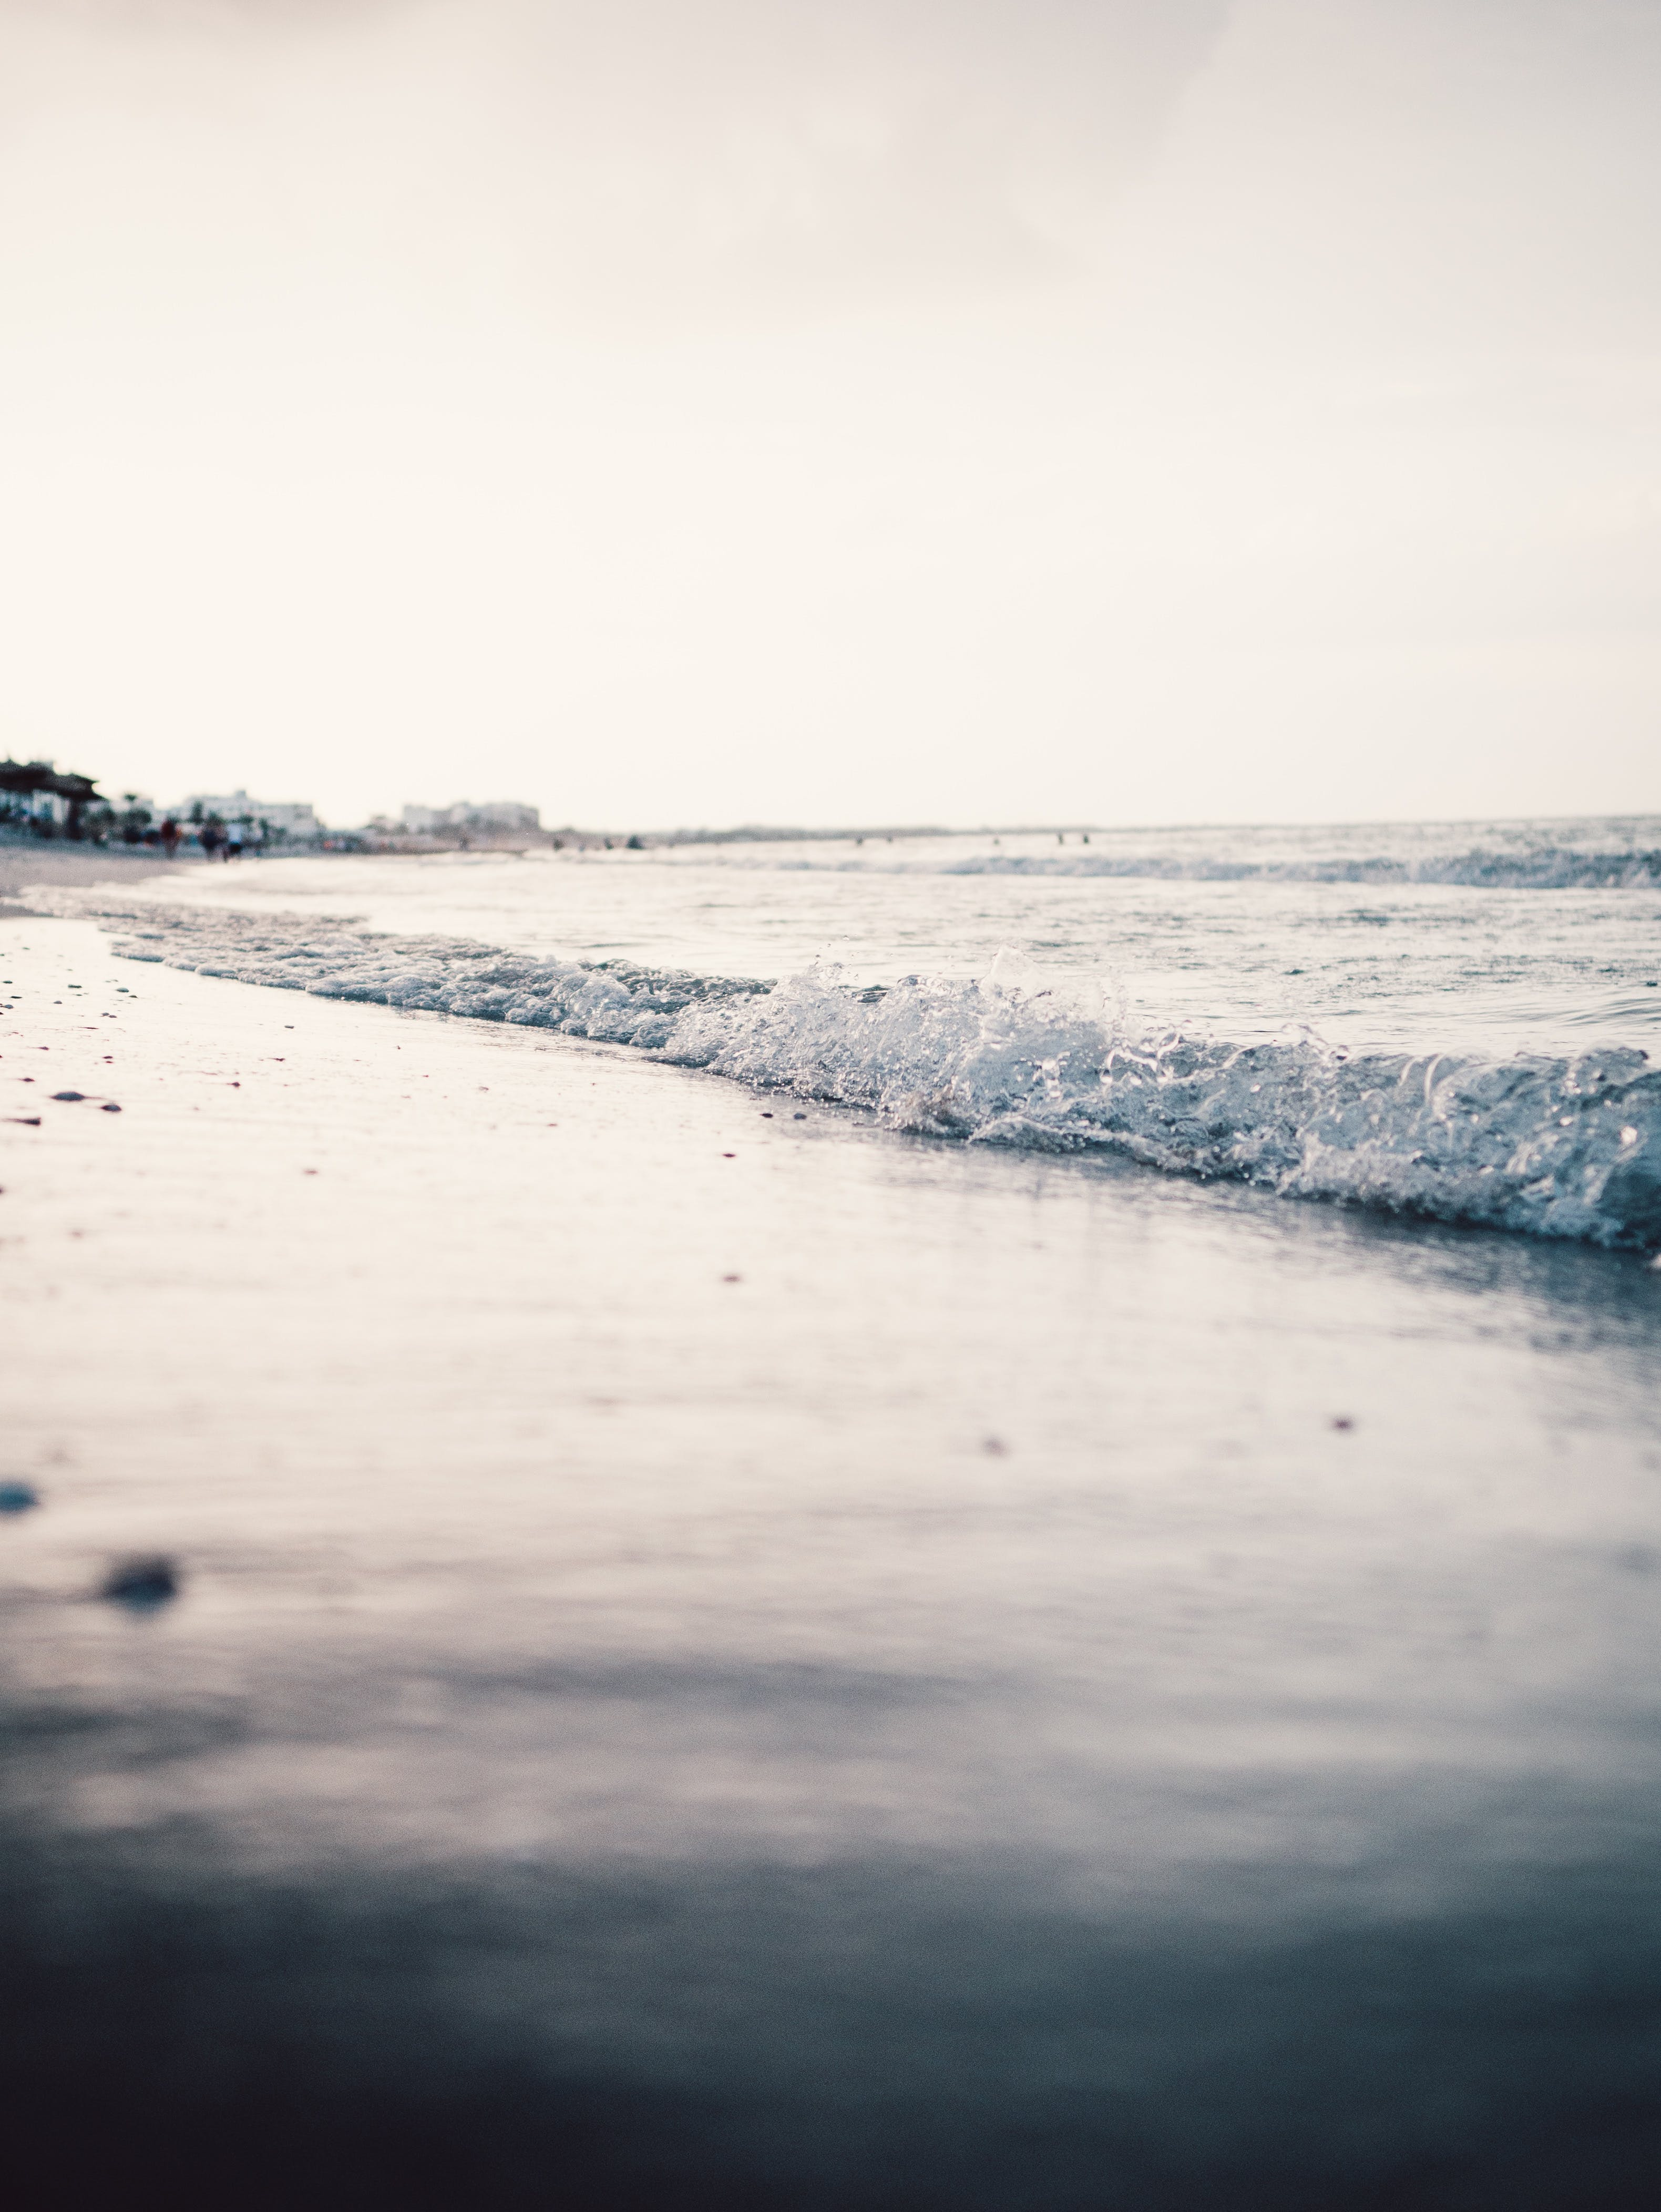 Landscape Photography of Seashore With Calm Sea Waves Under Gray Skies